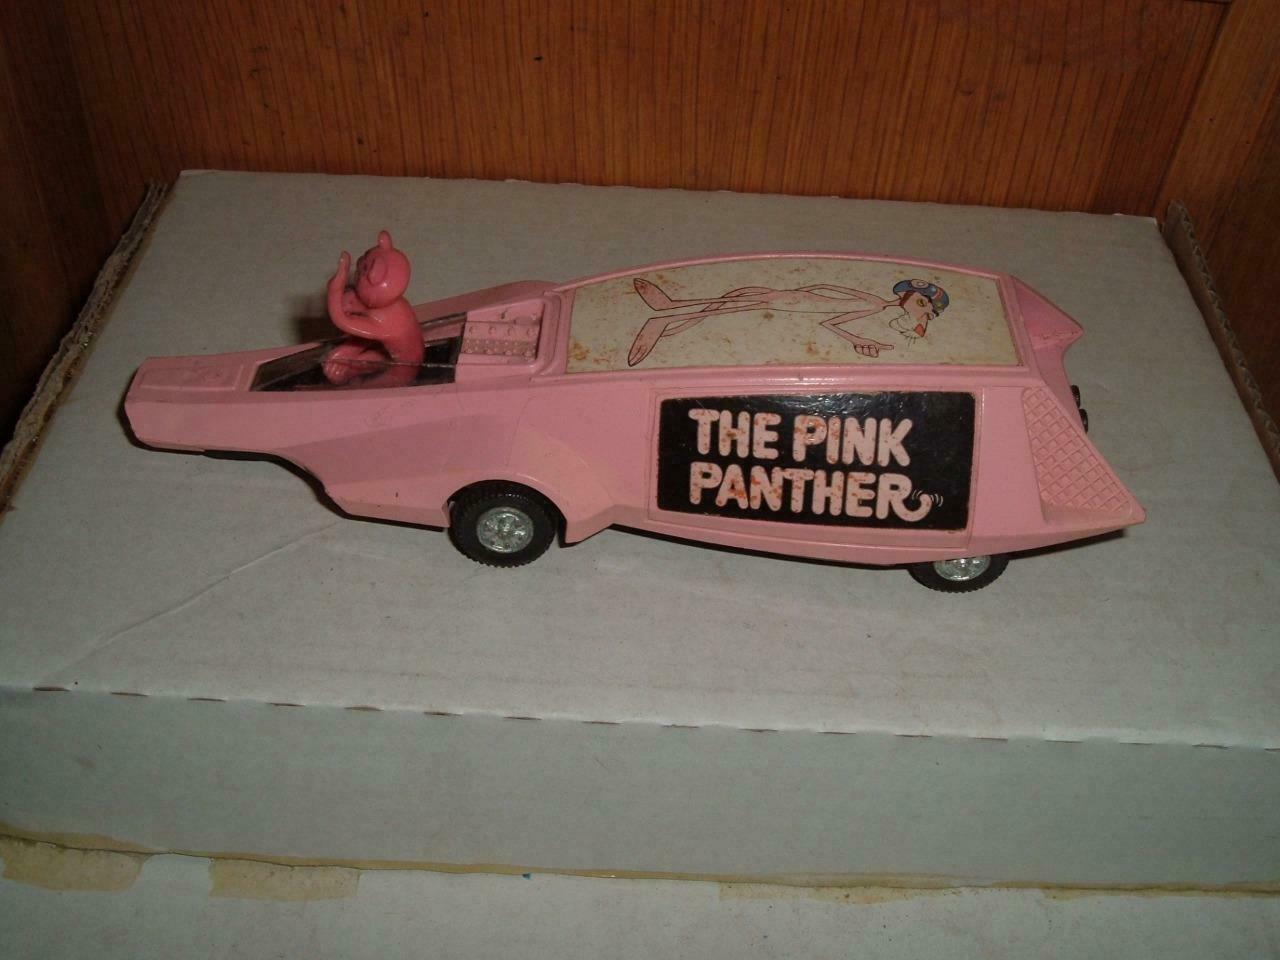 DINKY MECCANO ENGLAND ENGLAND ENGLAND - PLASTIC PINK PANTHER WITH FIGURE - IN USED VINTAGE 8ab8bd